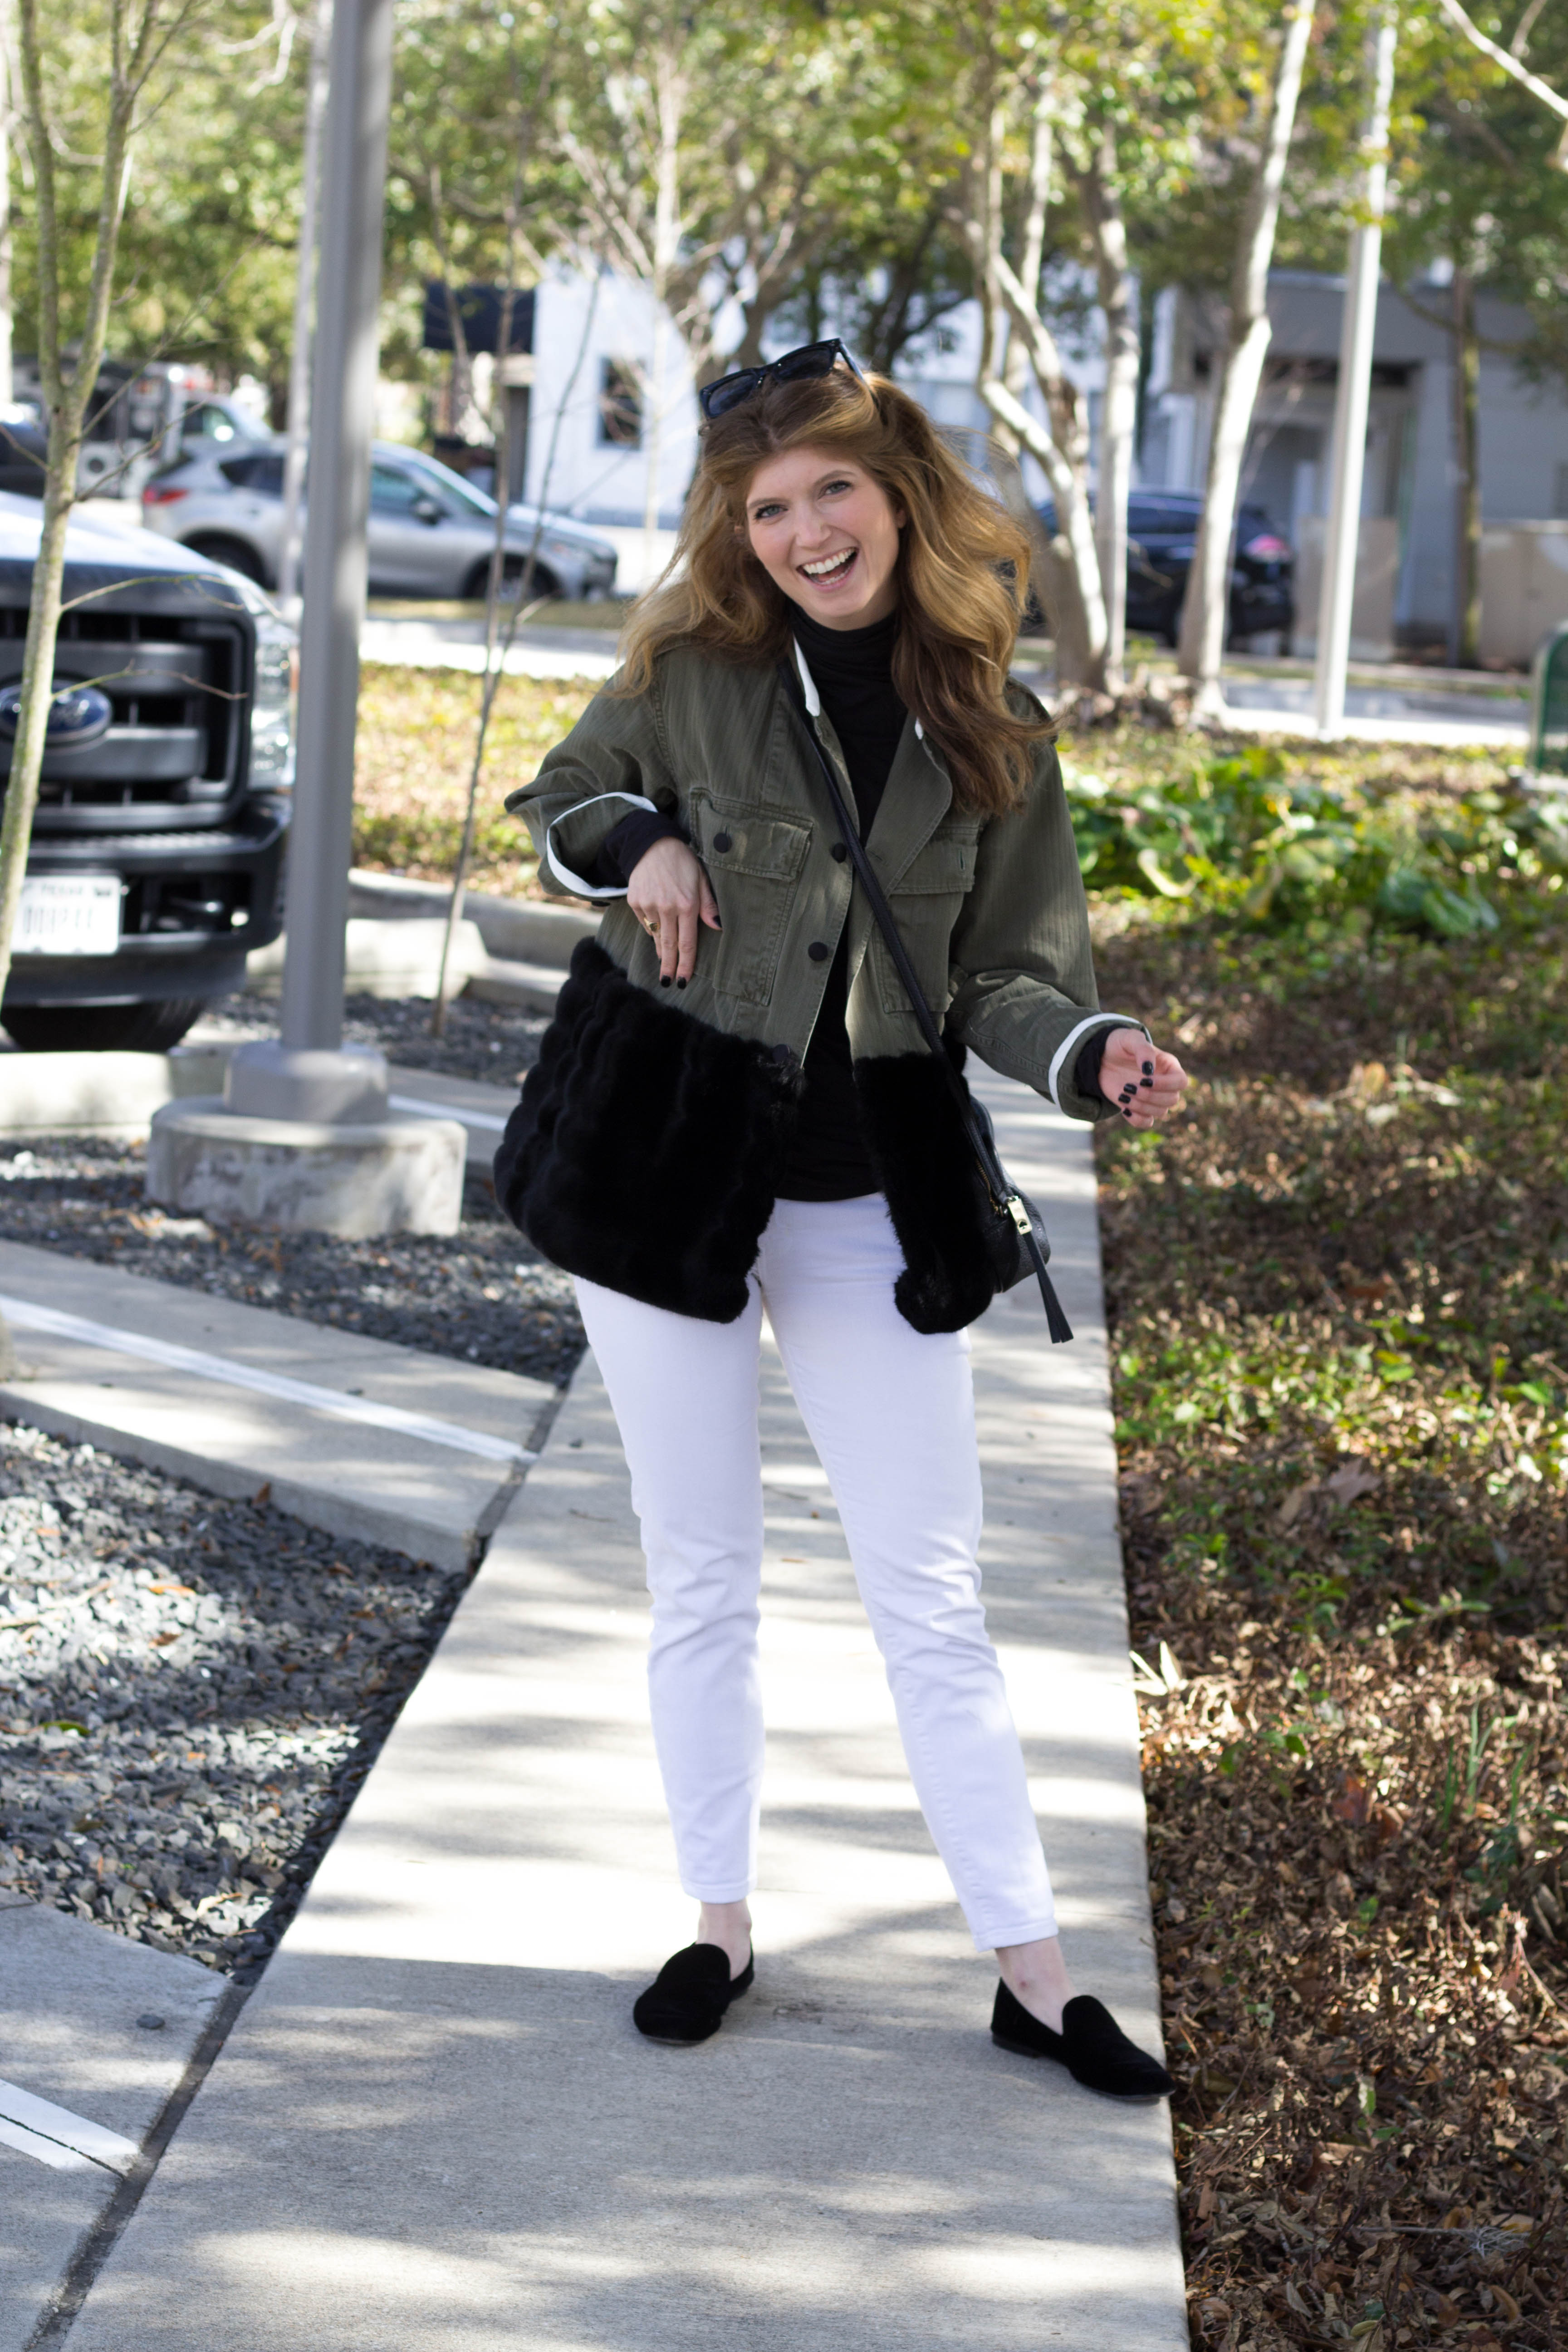 Harvey faircloth jacket, white jeans in the winter, how to style white jeans in winter